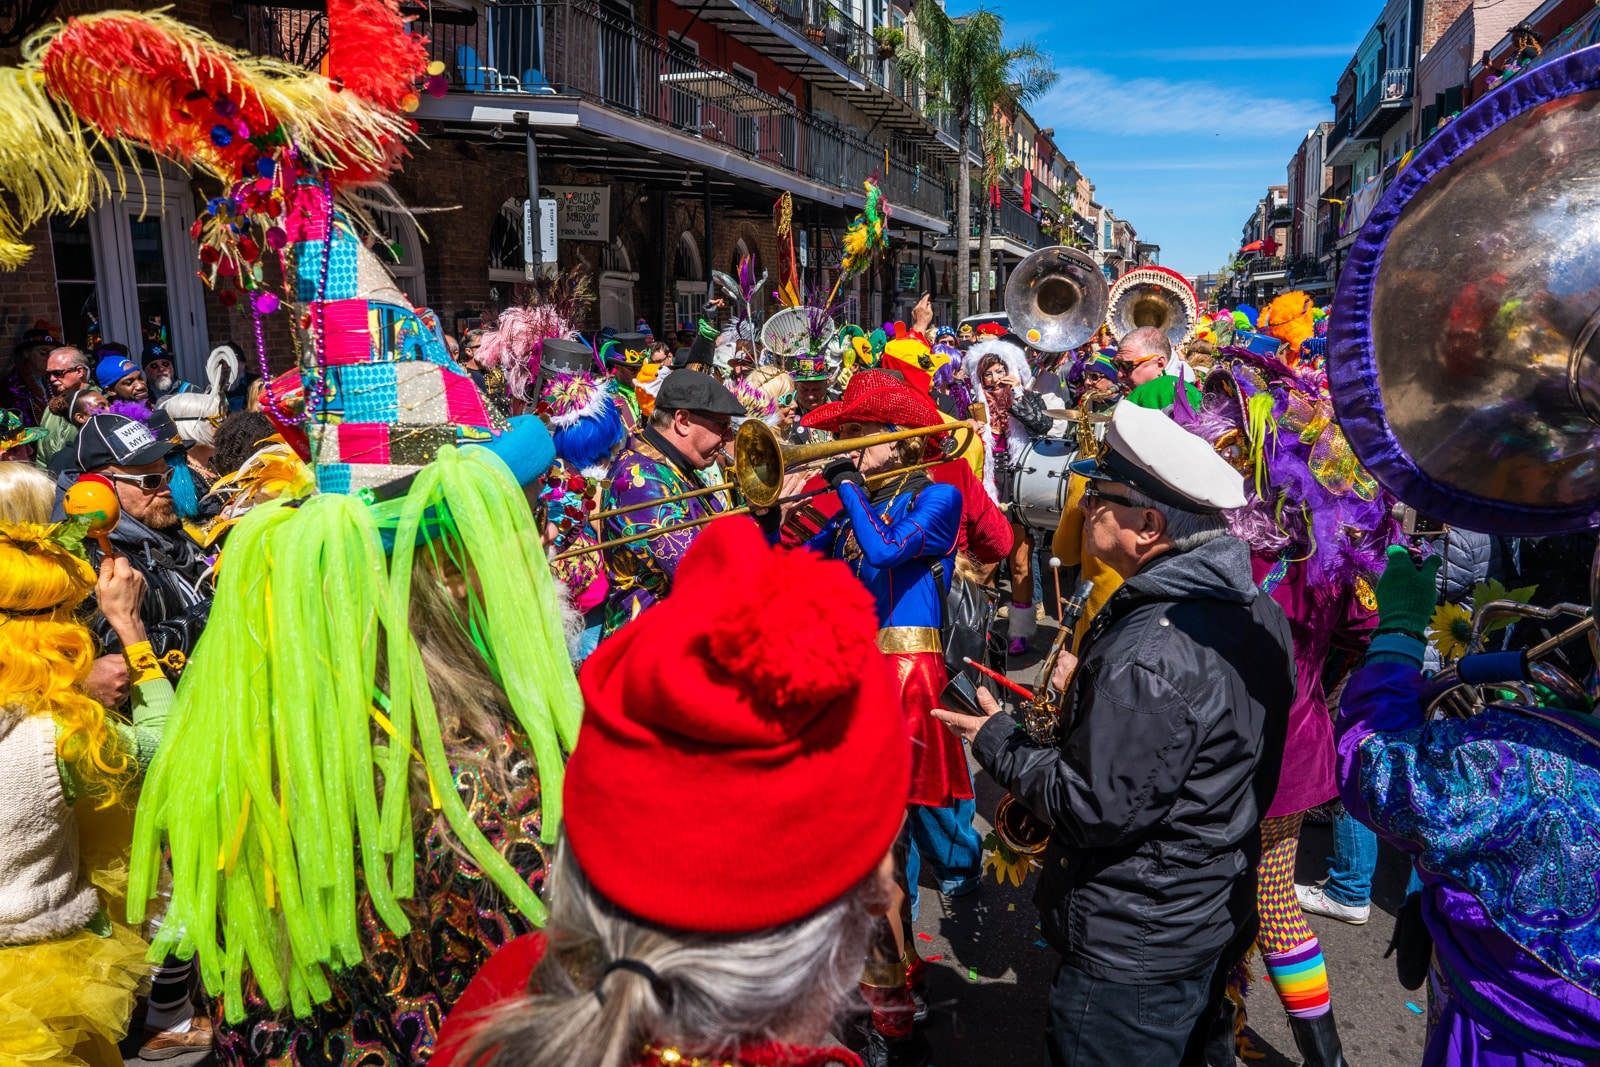 Paraders in costume in the French Quarter during Mardi Gras day in New Orleans